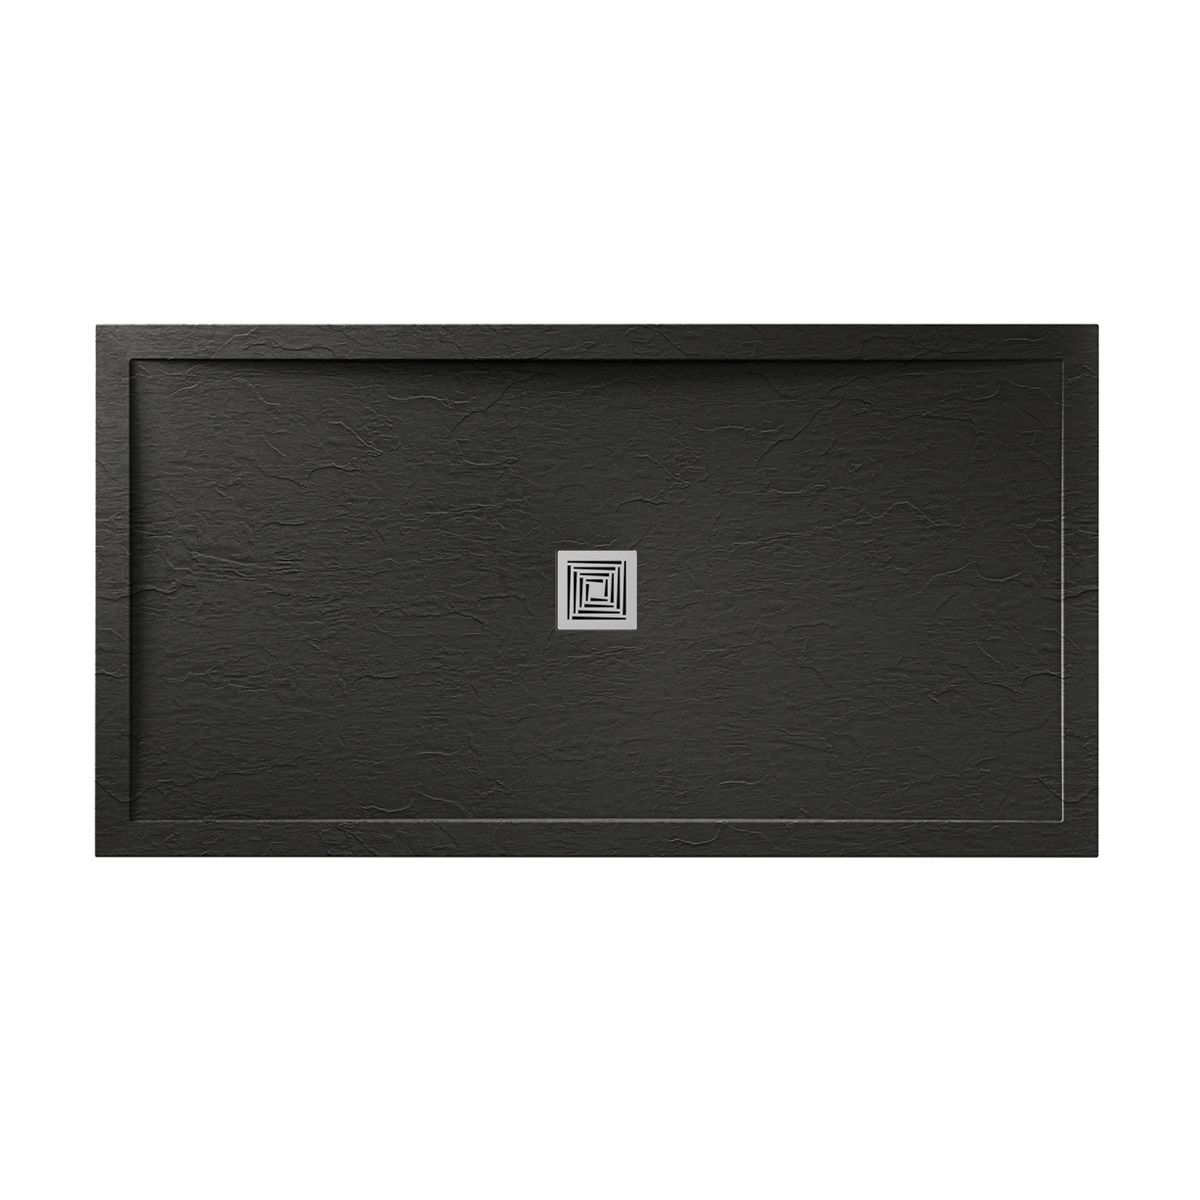 Aquadart Black Slate Shower Tray 1200 x 760